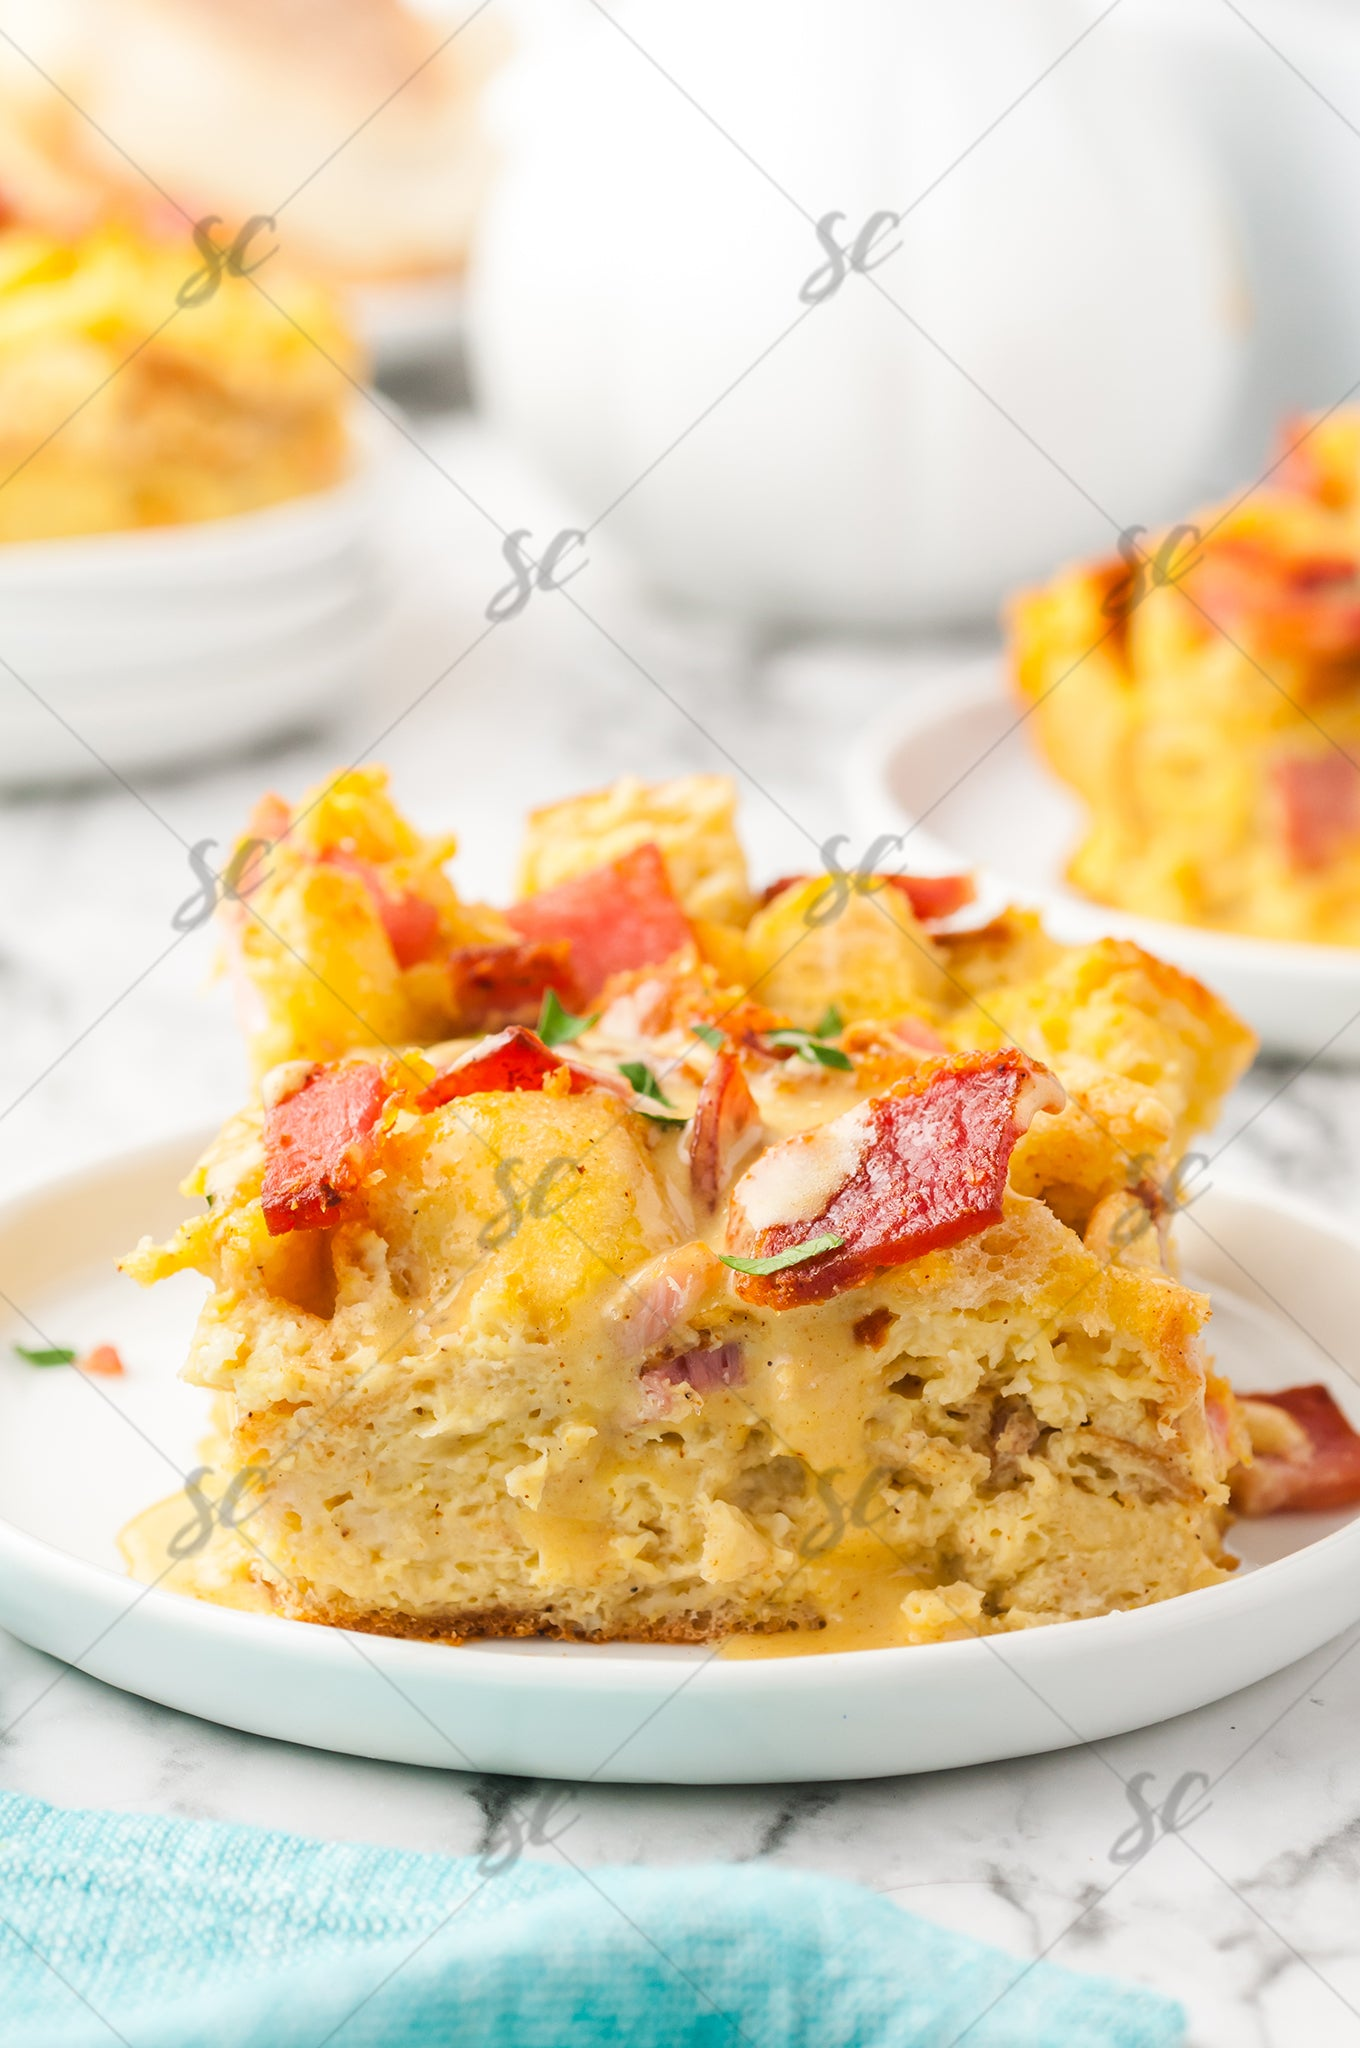 Eggs Benedict Casserole with Hallandaise - EXCLUSIVE